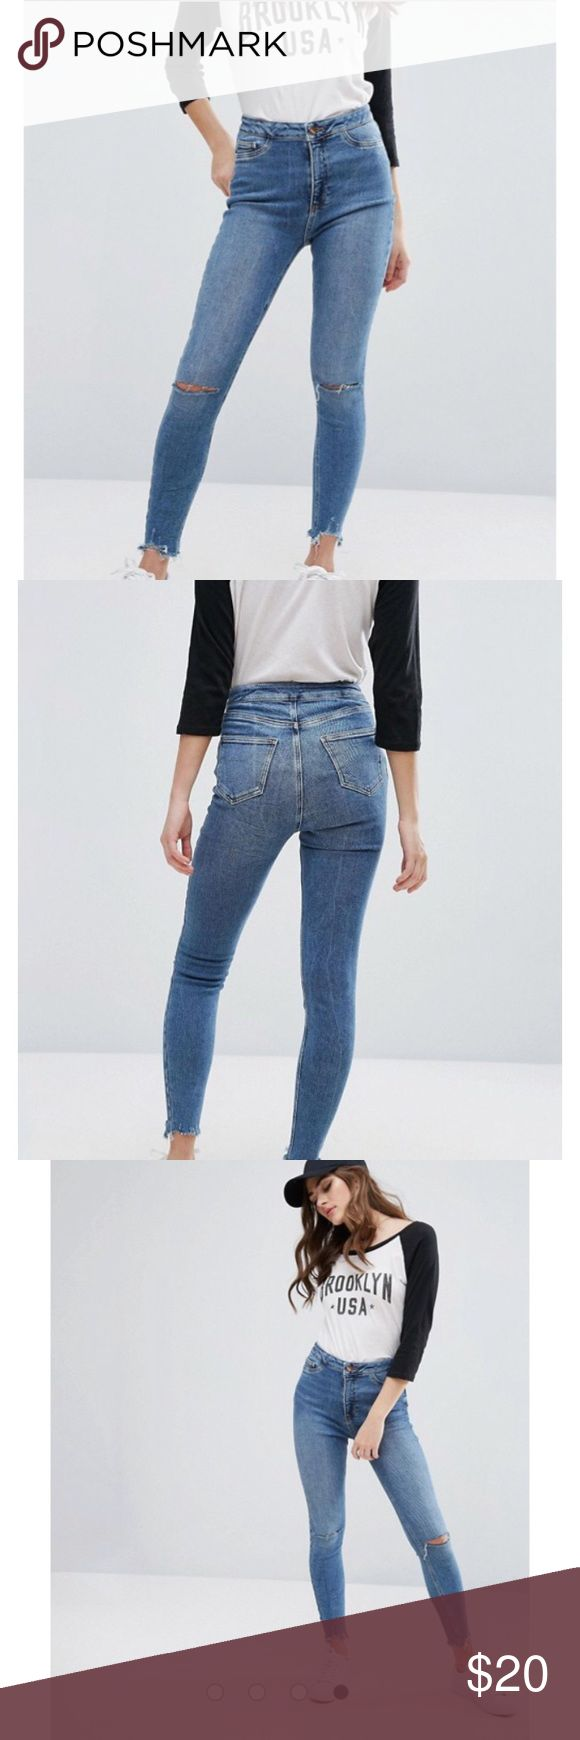 Asos High Waisted Super Skinny New Look Jeans •Originally from Asos  •In great condition •Stretchy material ASOS Jeans Skinny